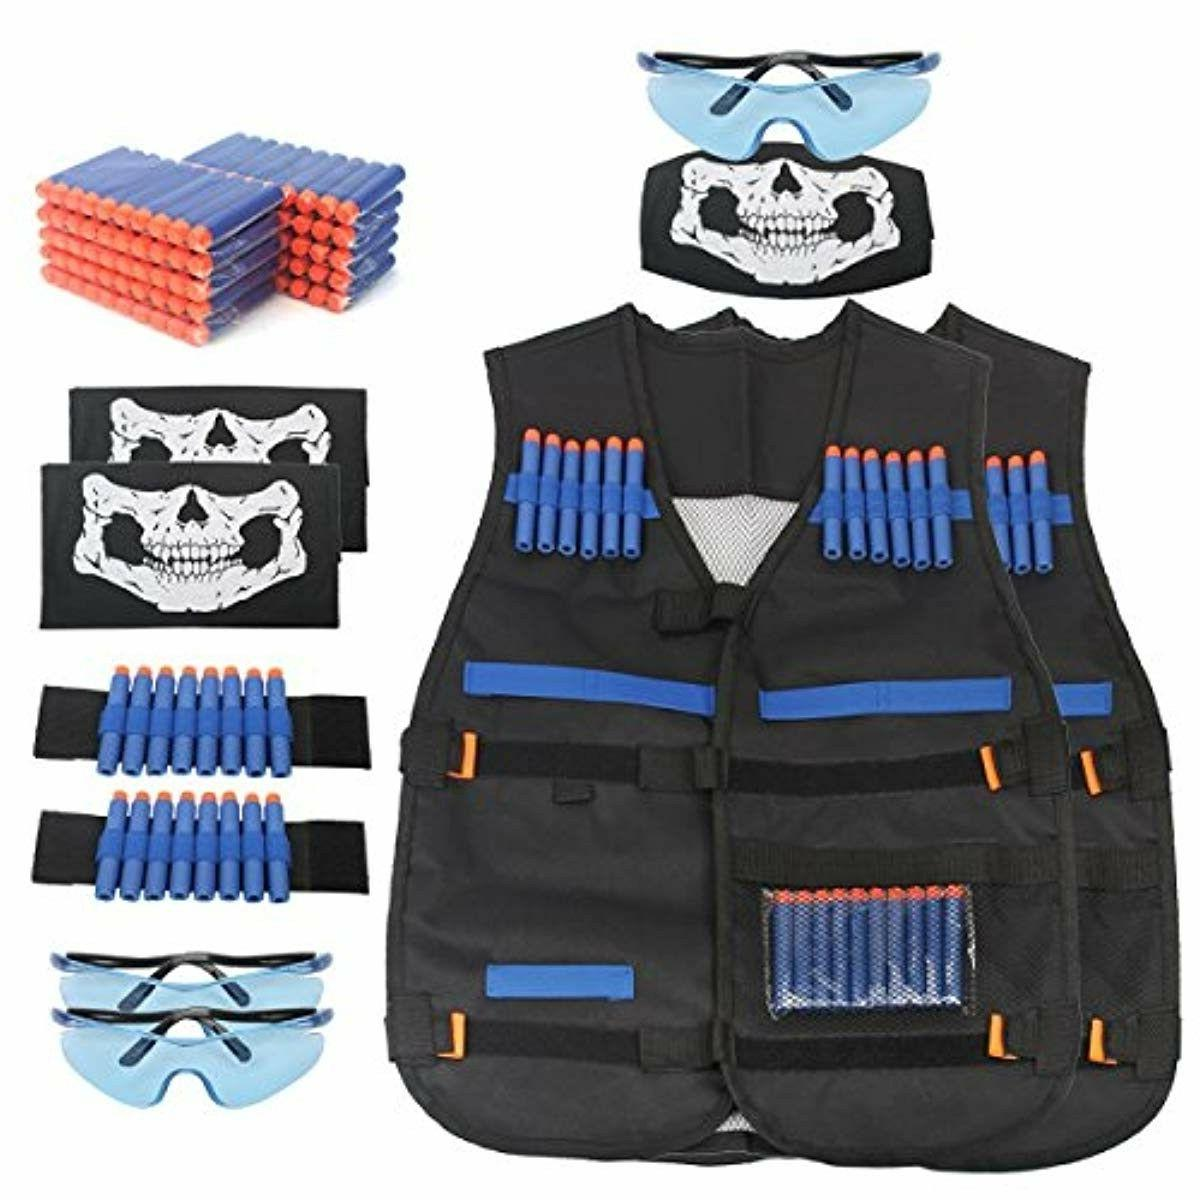 2 Suit Kit For Nerf Guns Series Accessory